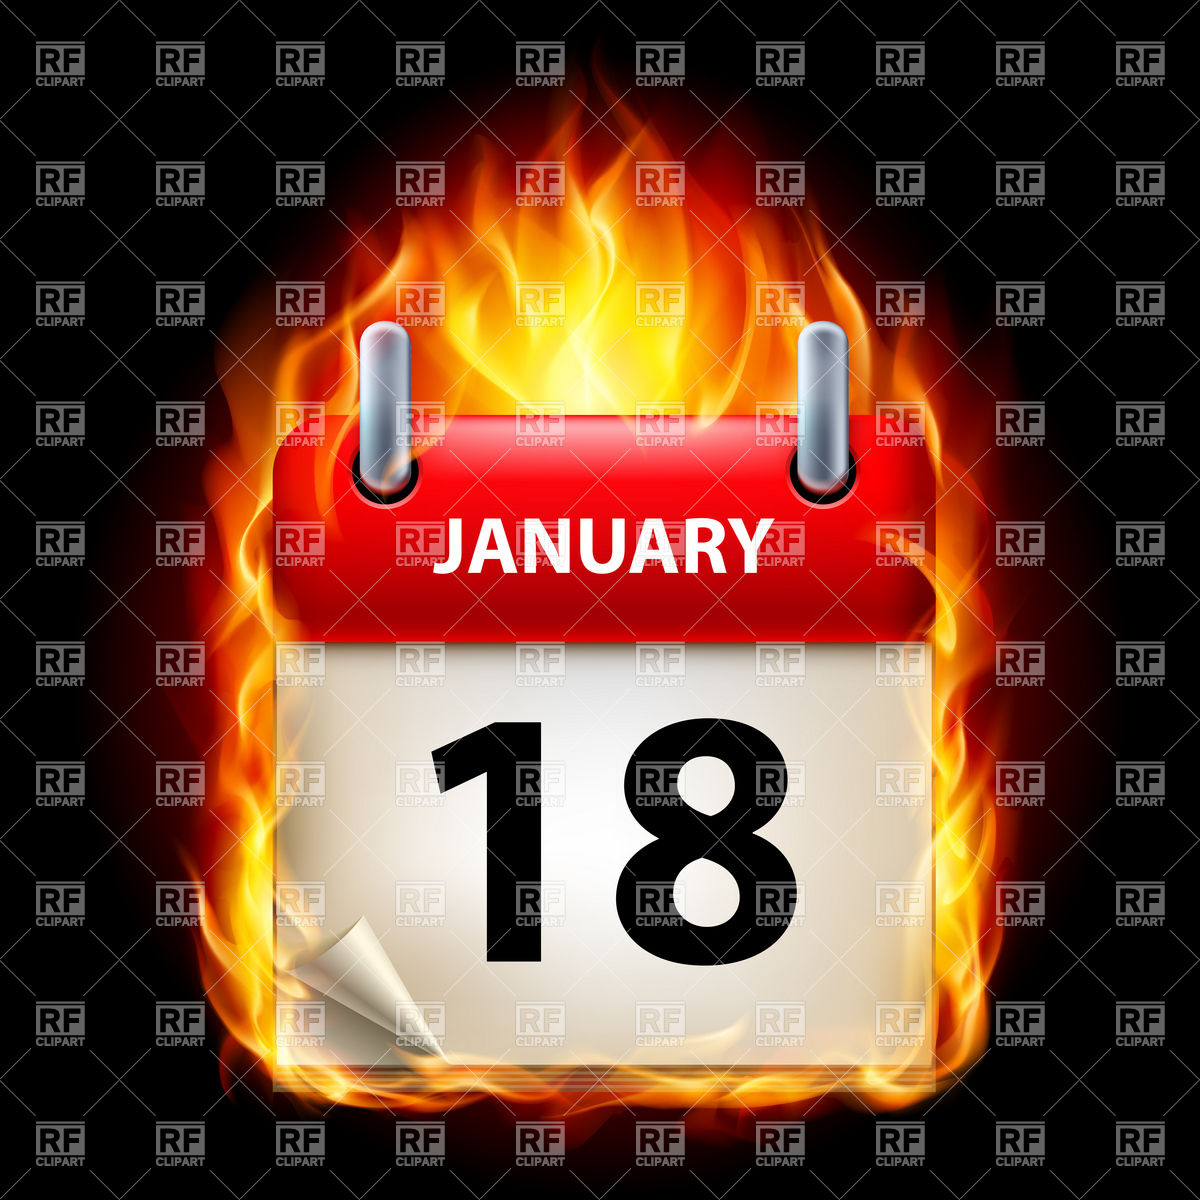 January 18th calendar clipart banner royalty free January 18th calendar clipart - ClipartFest banner royalty free